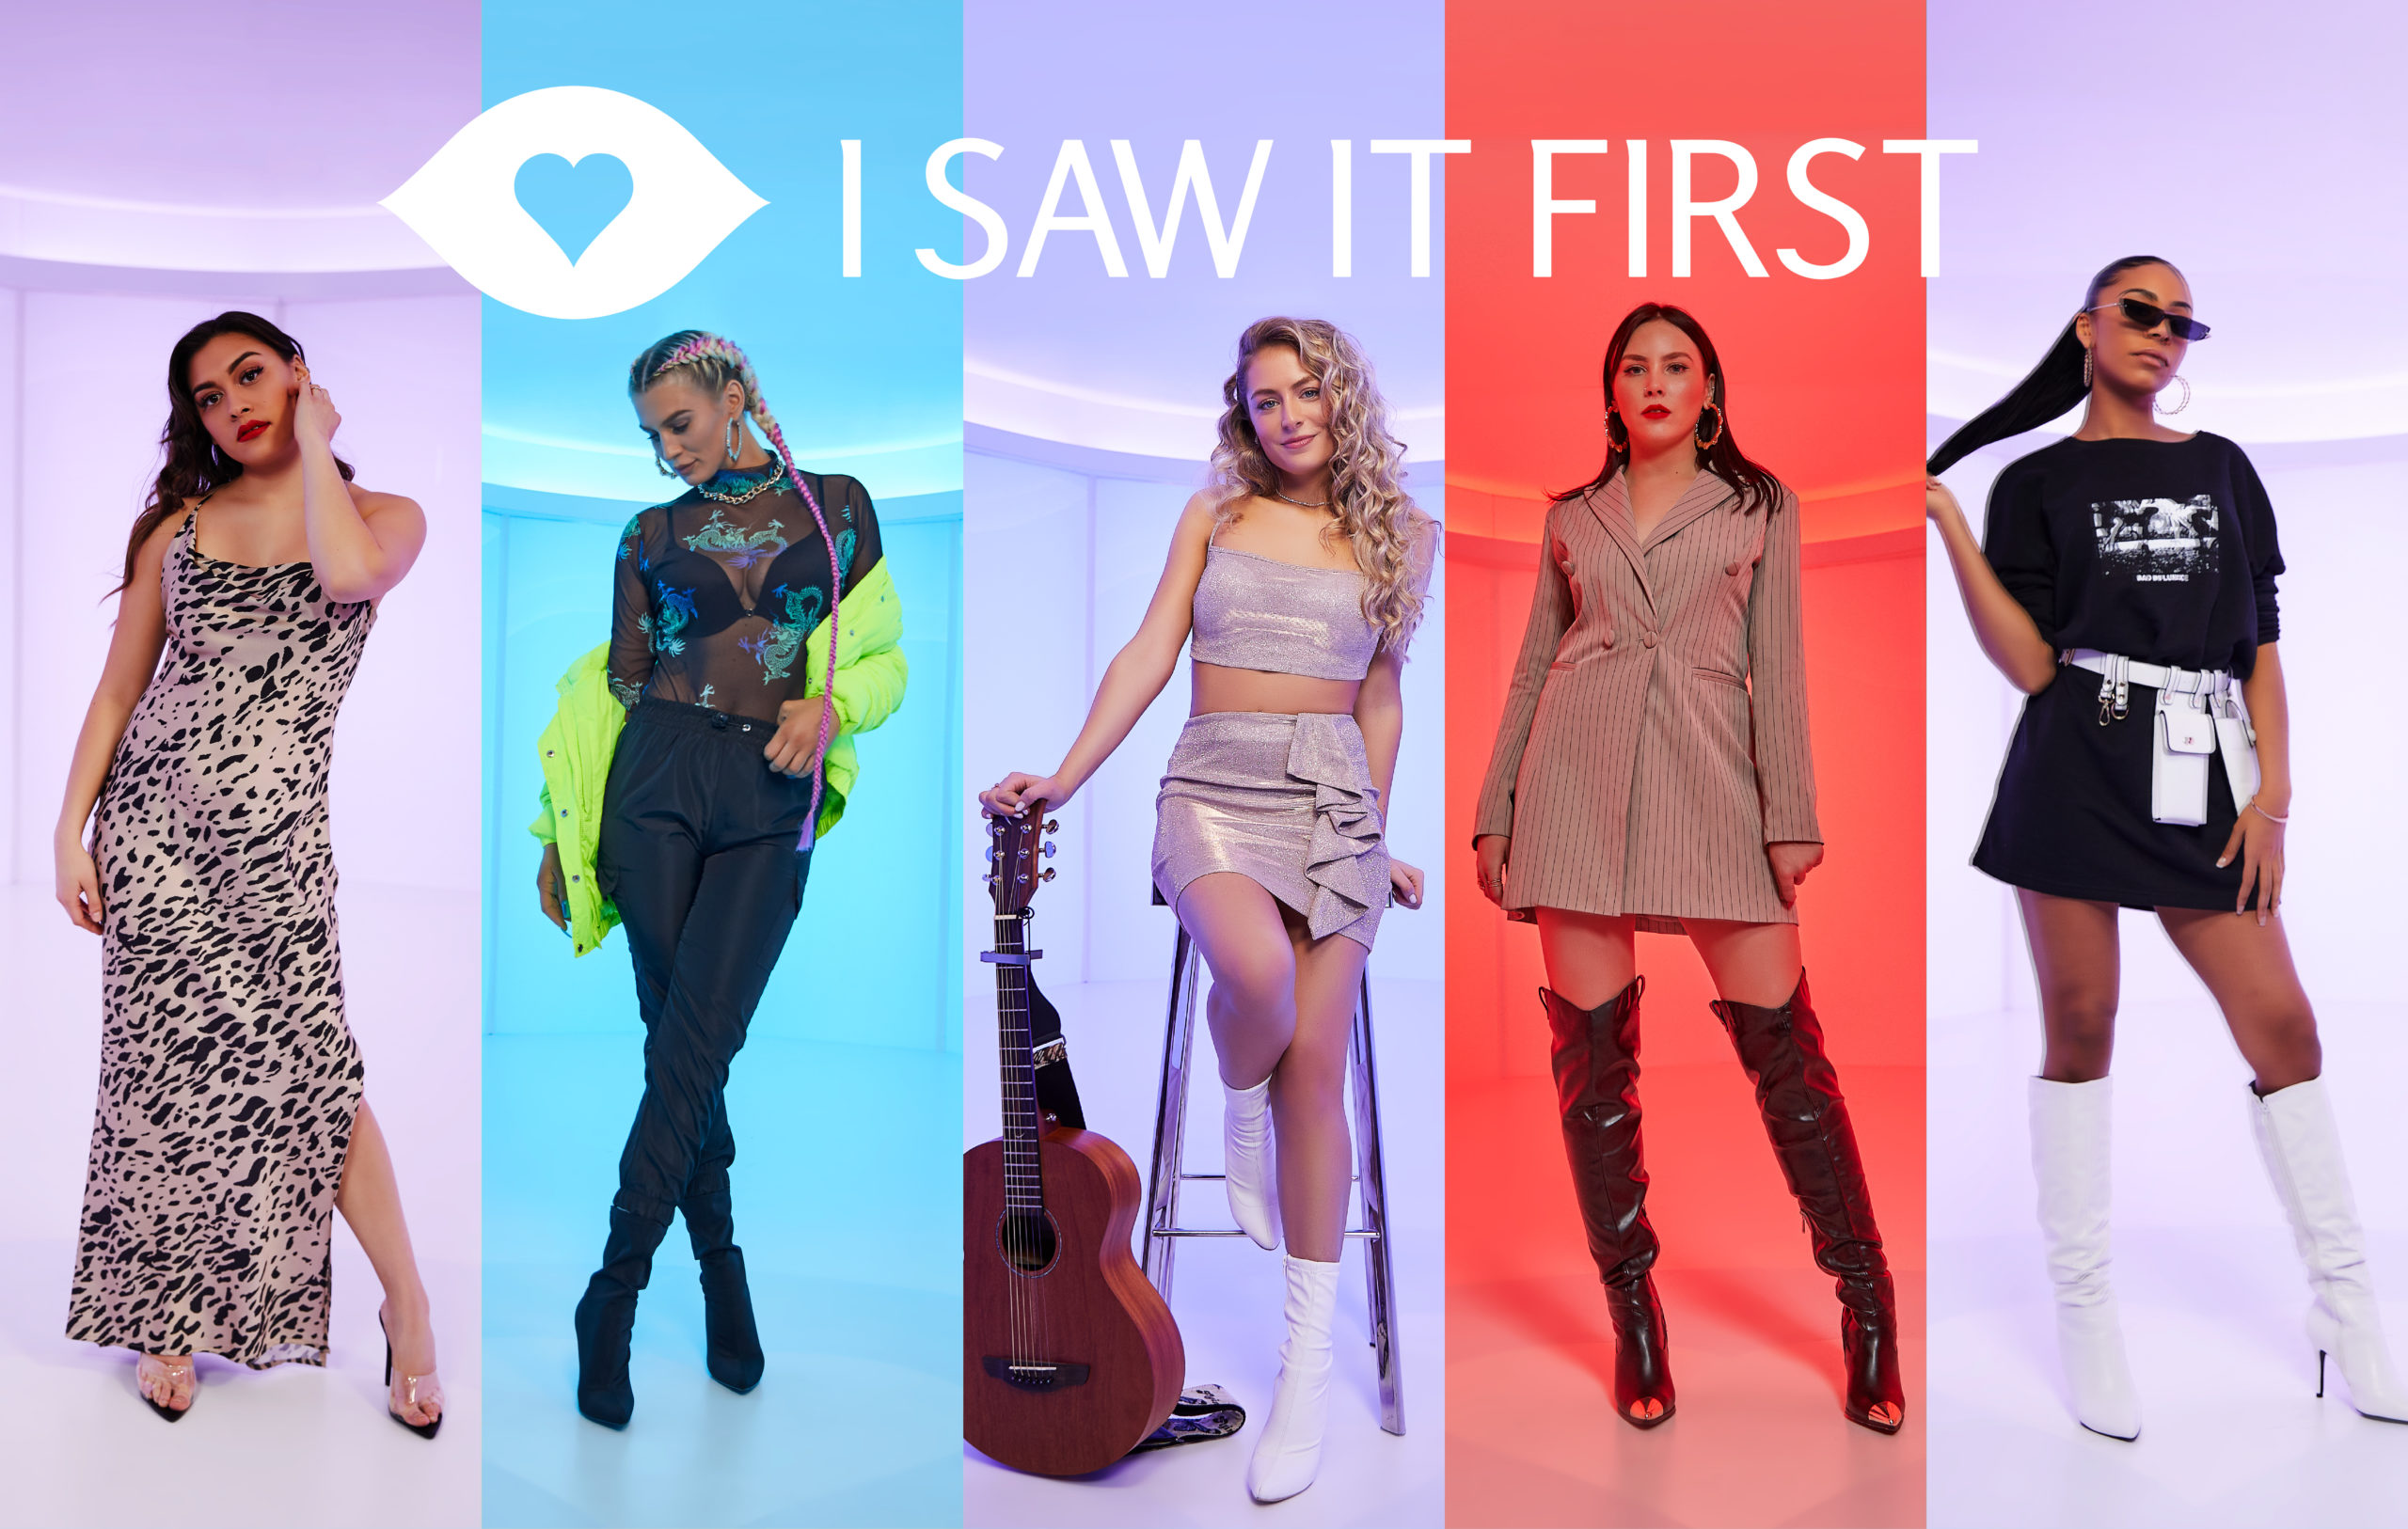 Discover your new favourite artist with I Saw It First